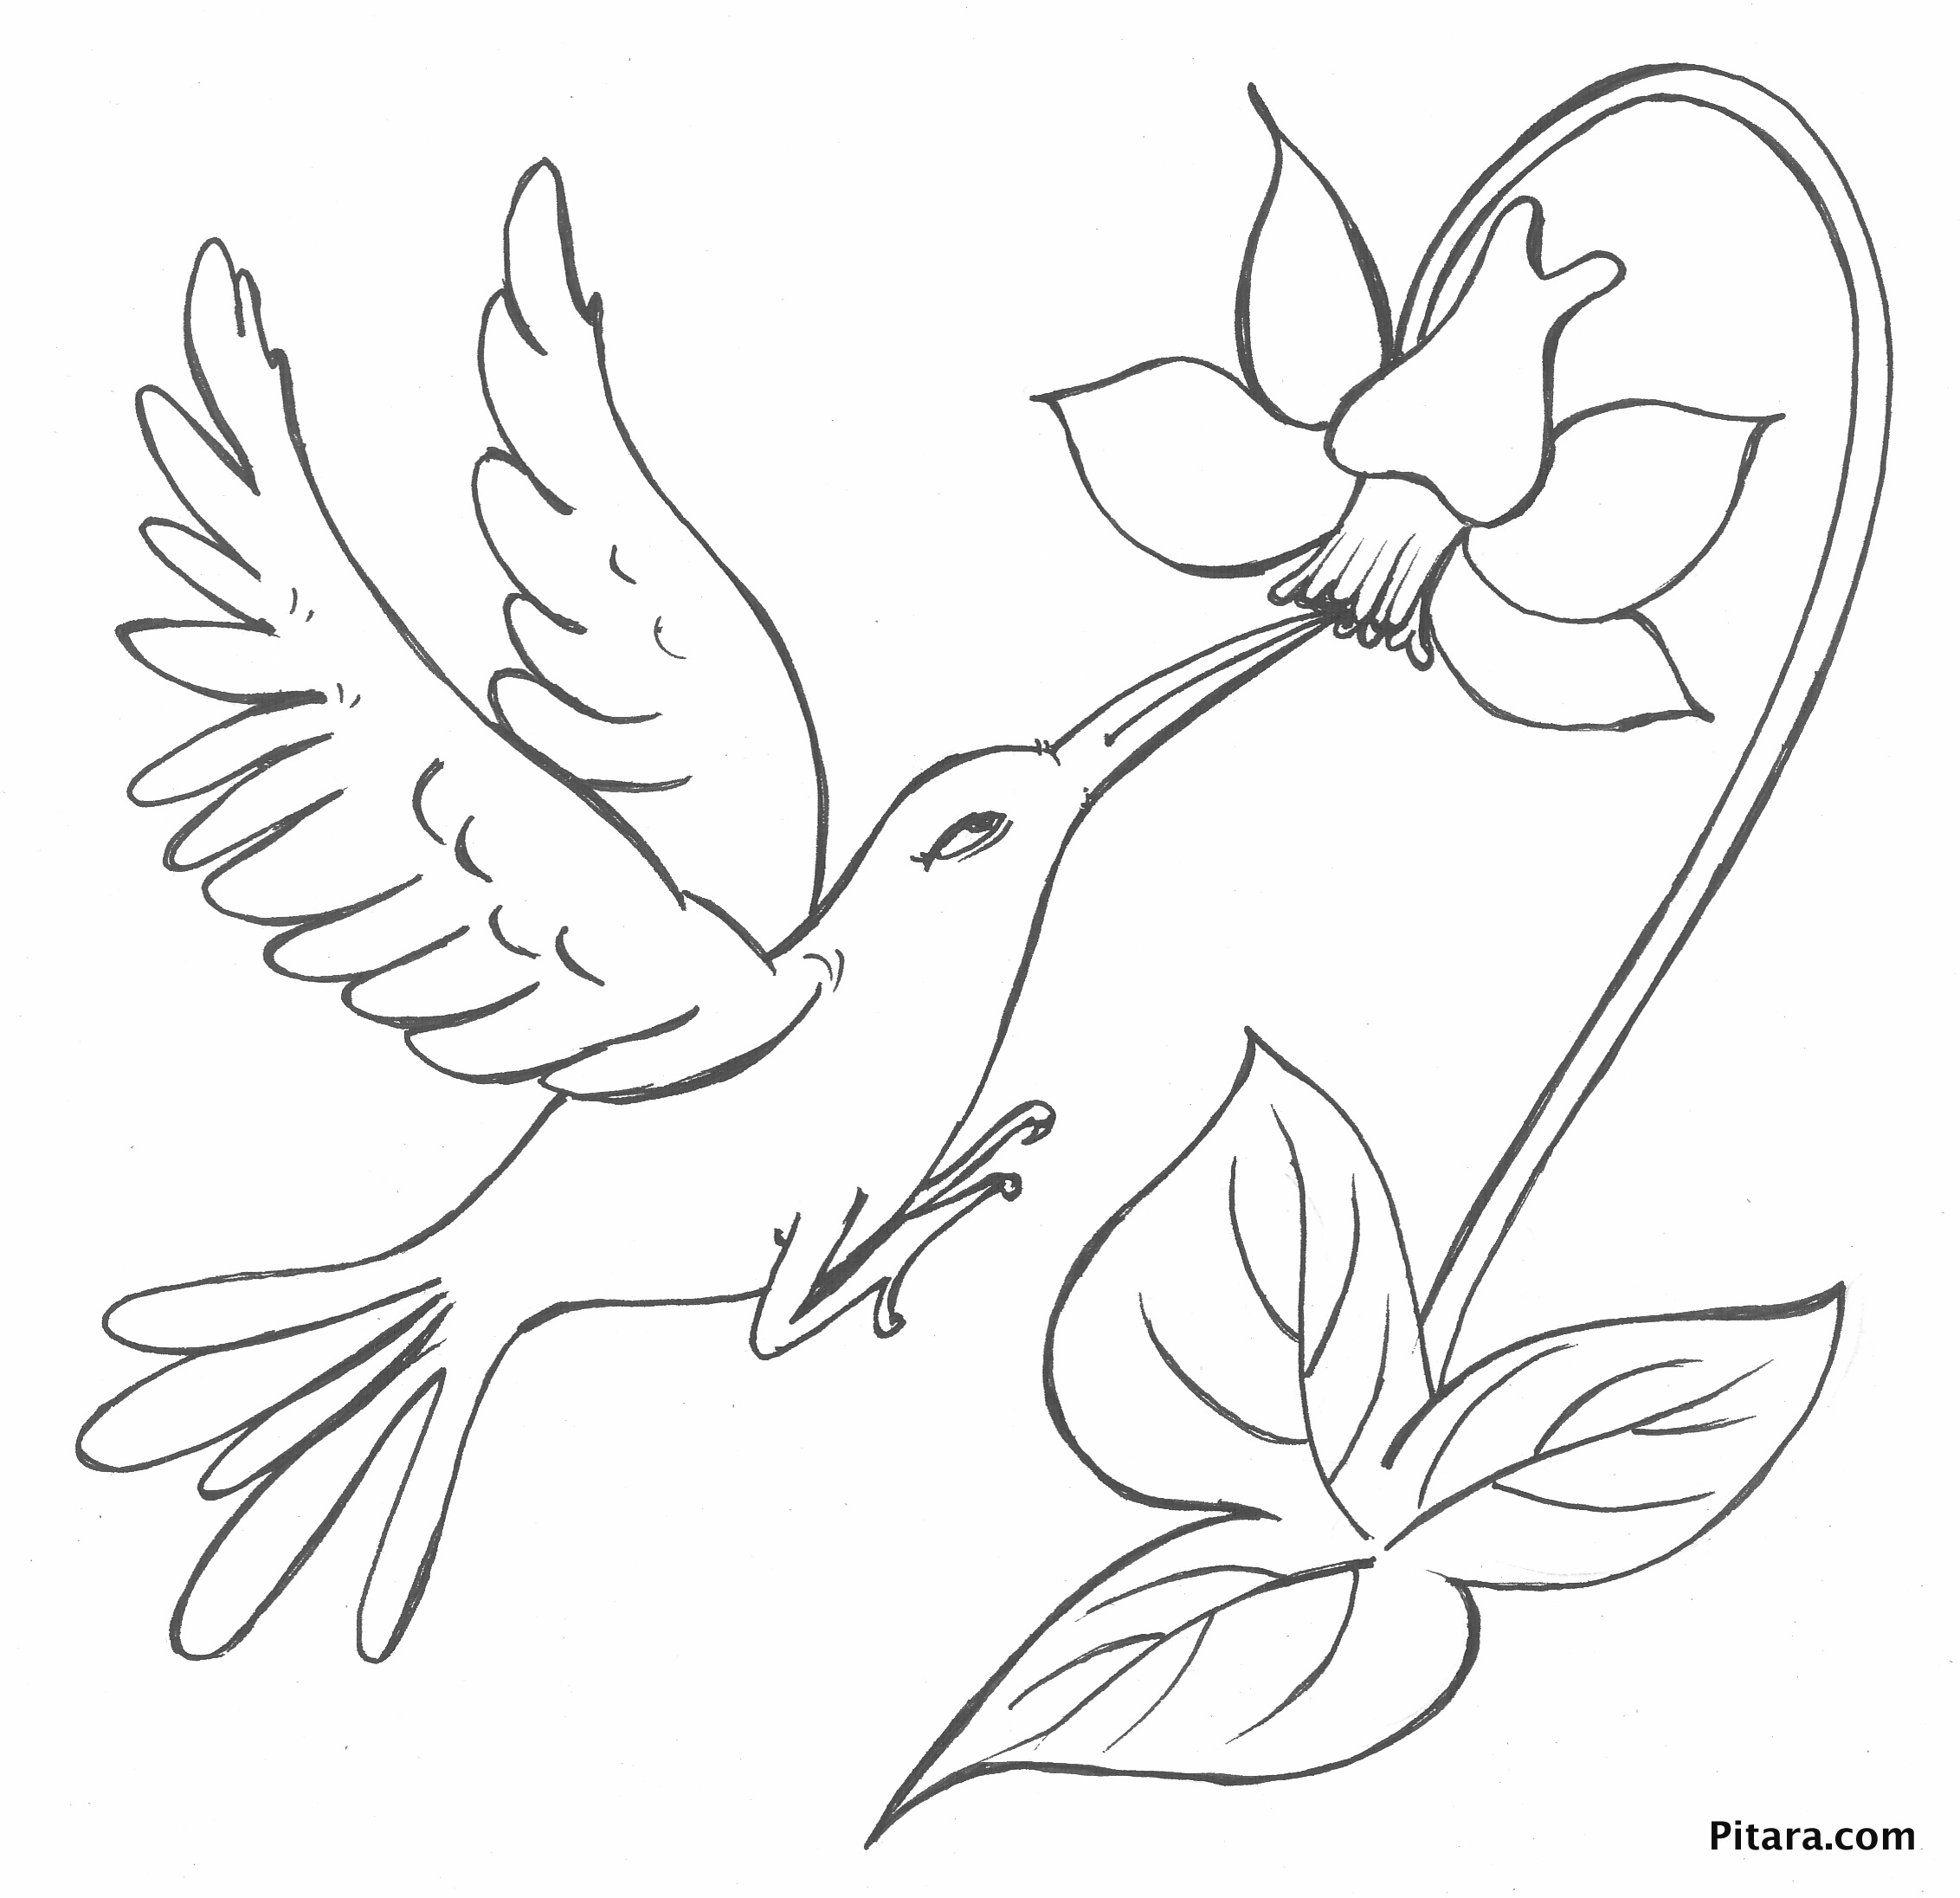 Birds And Flowers Coloring Pages At Getdrawings Com Free For